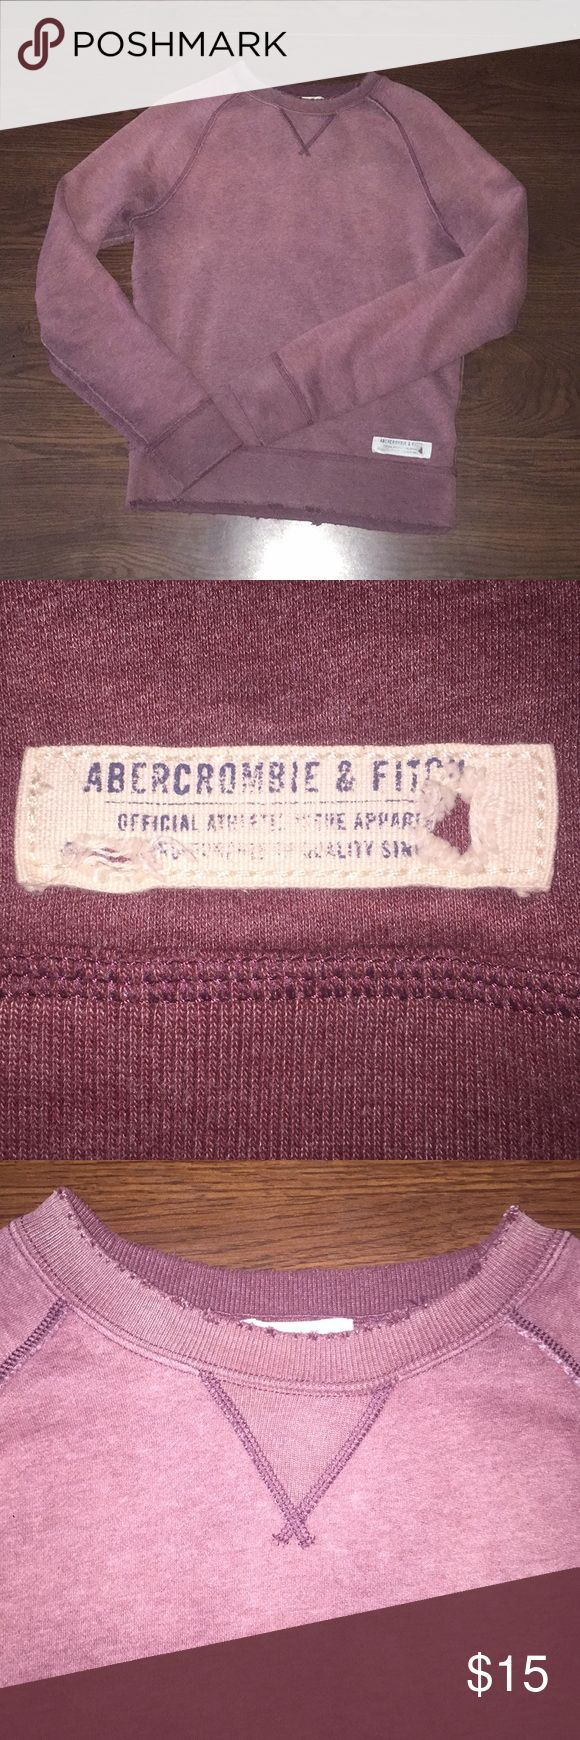 Abercrombie Men's Crewneck sweater. Abercrombie and Fitch Men's crewneck. Abercrombie & Fitch Sweaters Crewneck